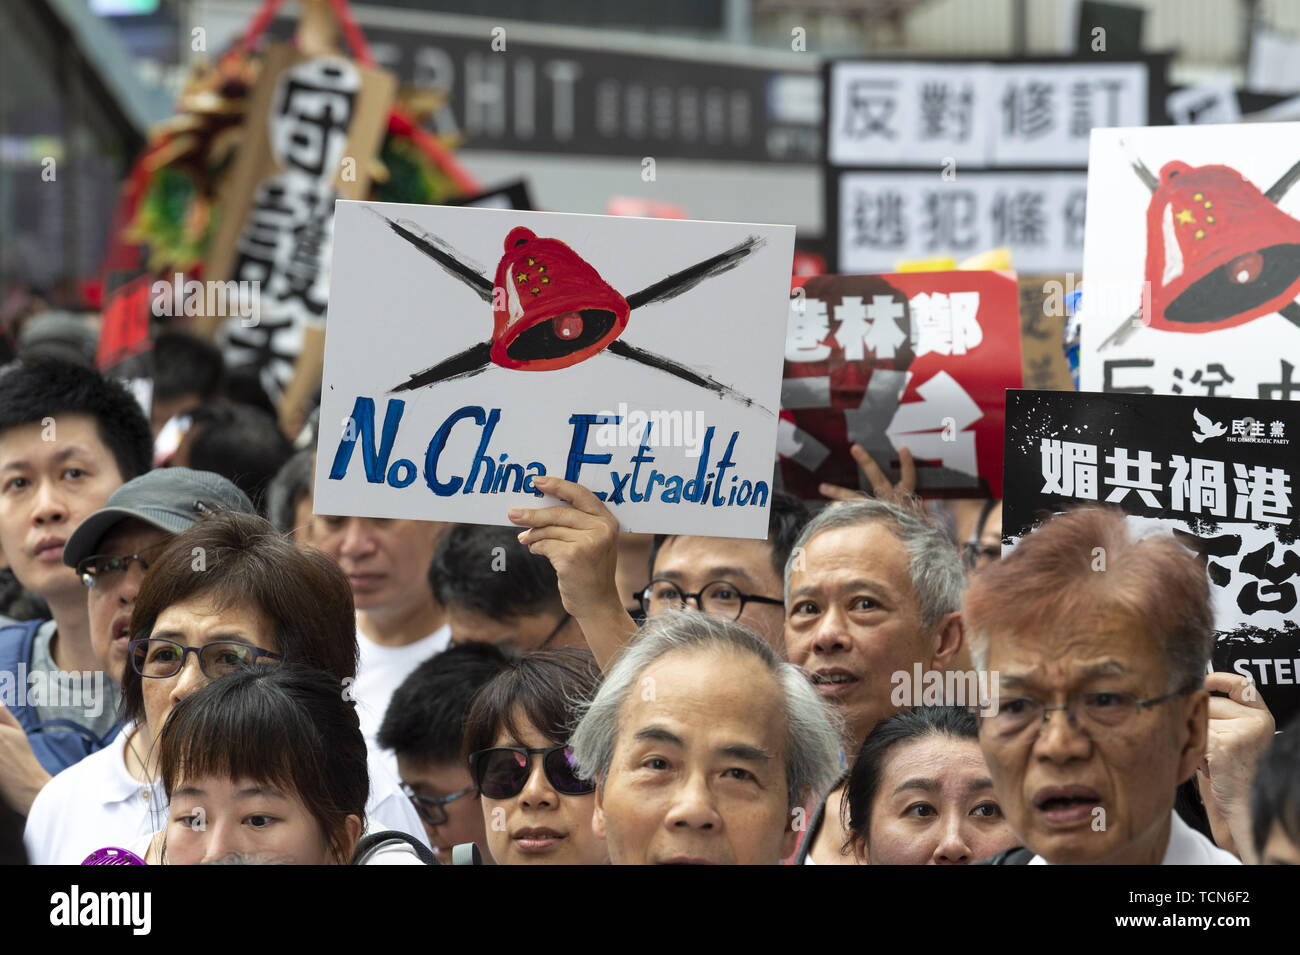 Hong Kong, Hong Kong SAR, CHINA. 9th June, 2019. Protest signs in the crowd.Hong Kong sees one of the largest protests ever as people come out in force to protest the proposed extradition bill. The bill would allow fro the removal of people to China to face trial. People feel this clearly violates the One Country Two Systems government that was put in place following the handover to the motherland. Credit: Jayne Russell/ZUMA Wire/Alamy Live News - Stock Image